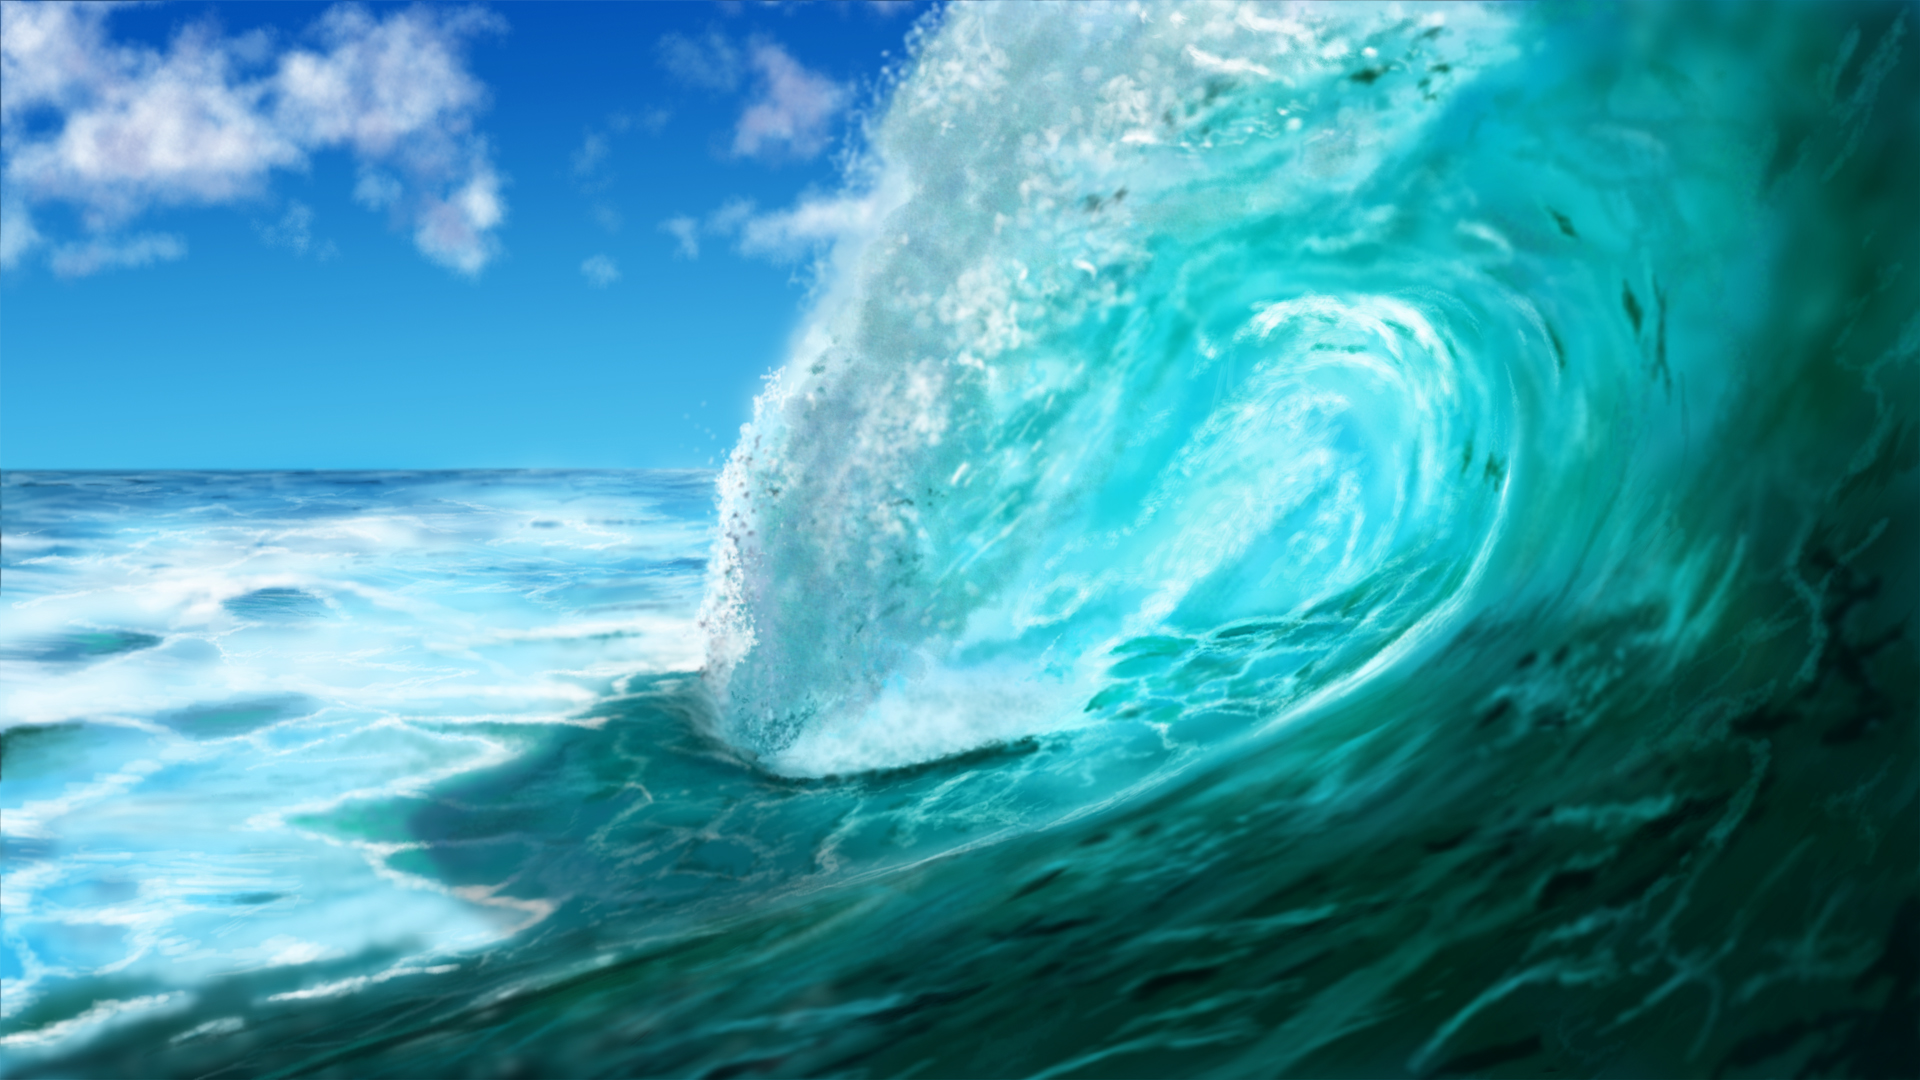 Ocean Waves Wallpaper Tumblr 3